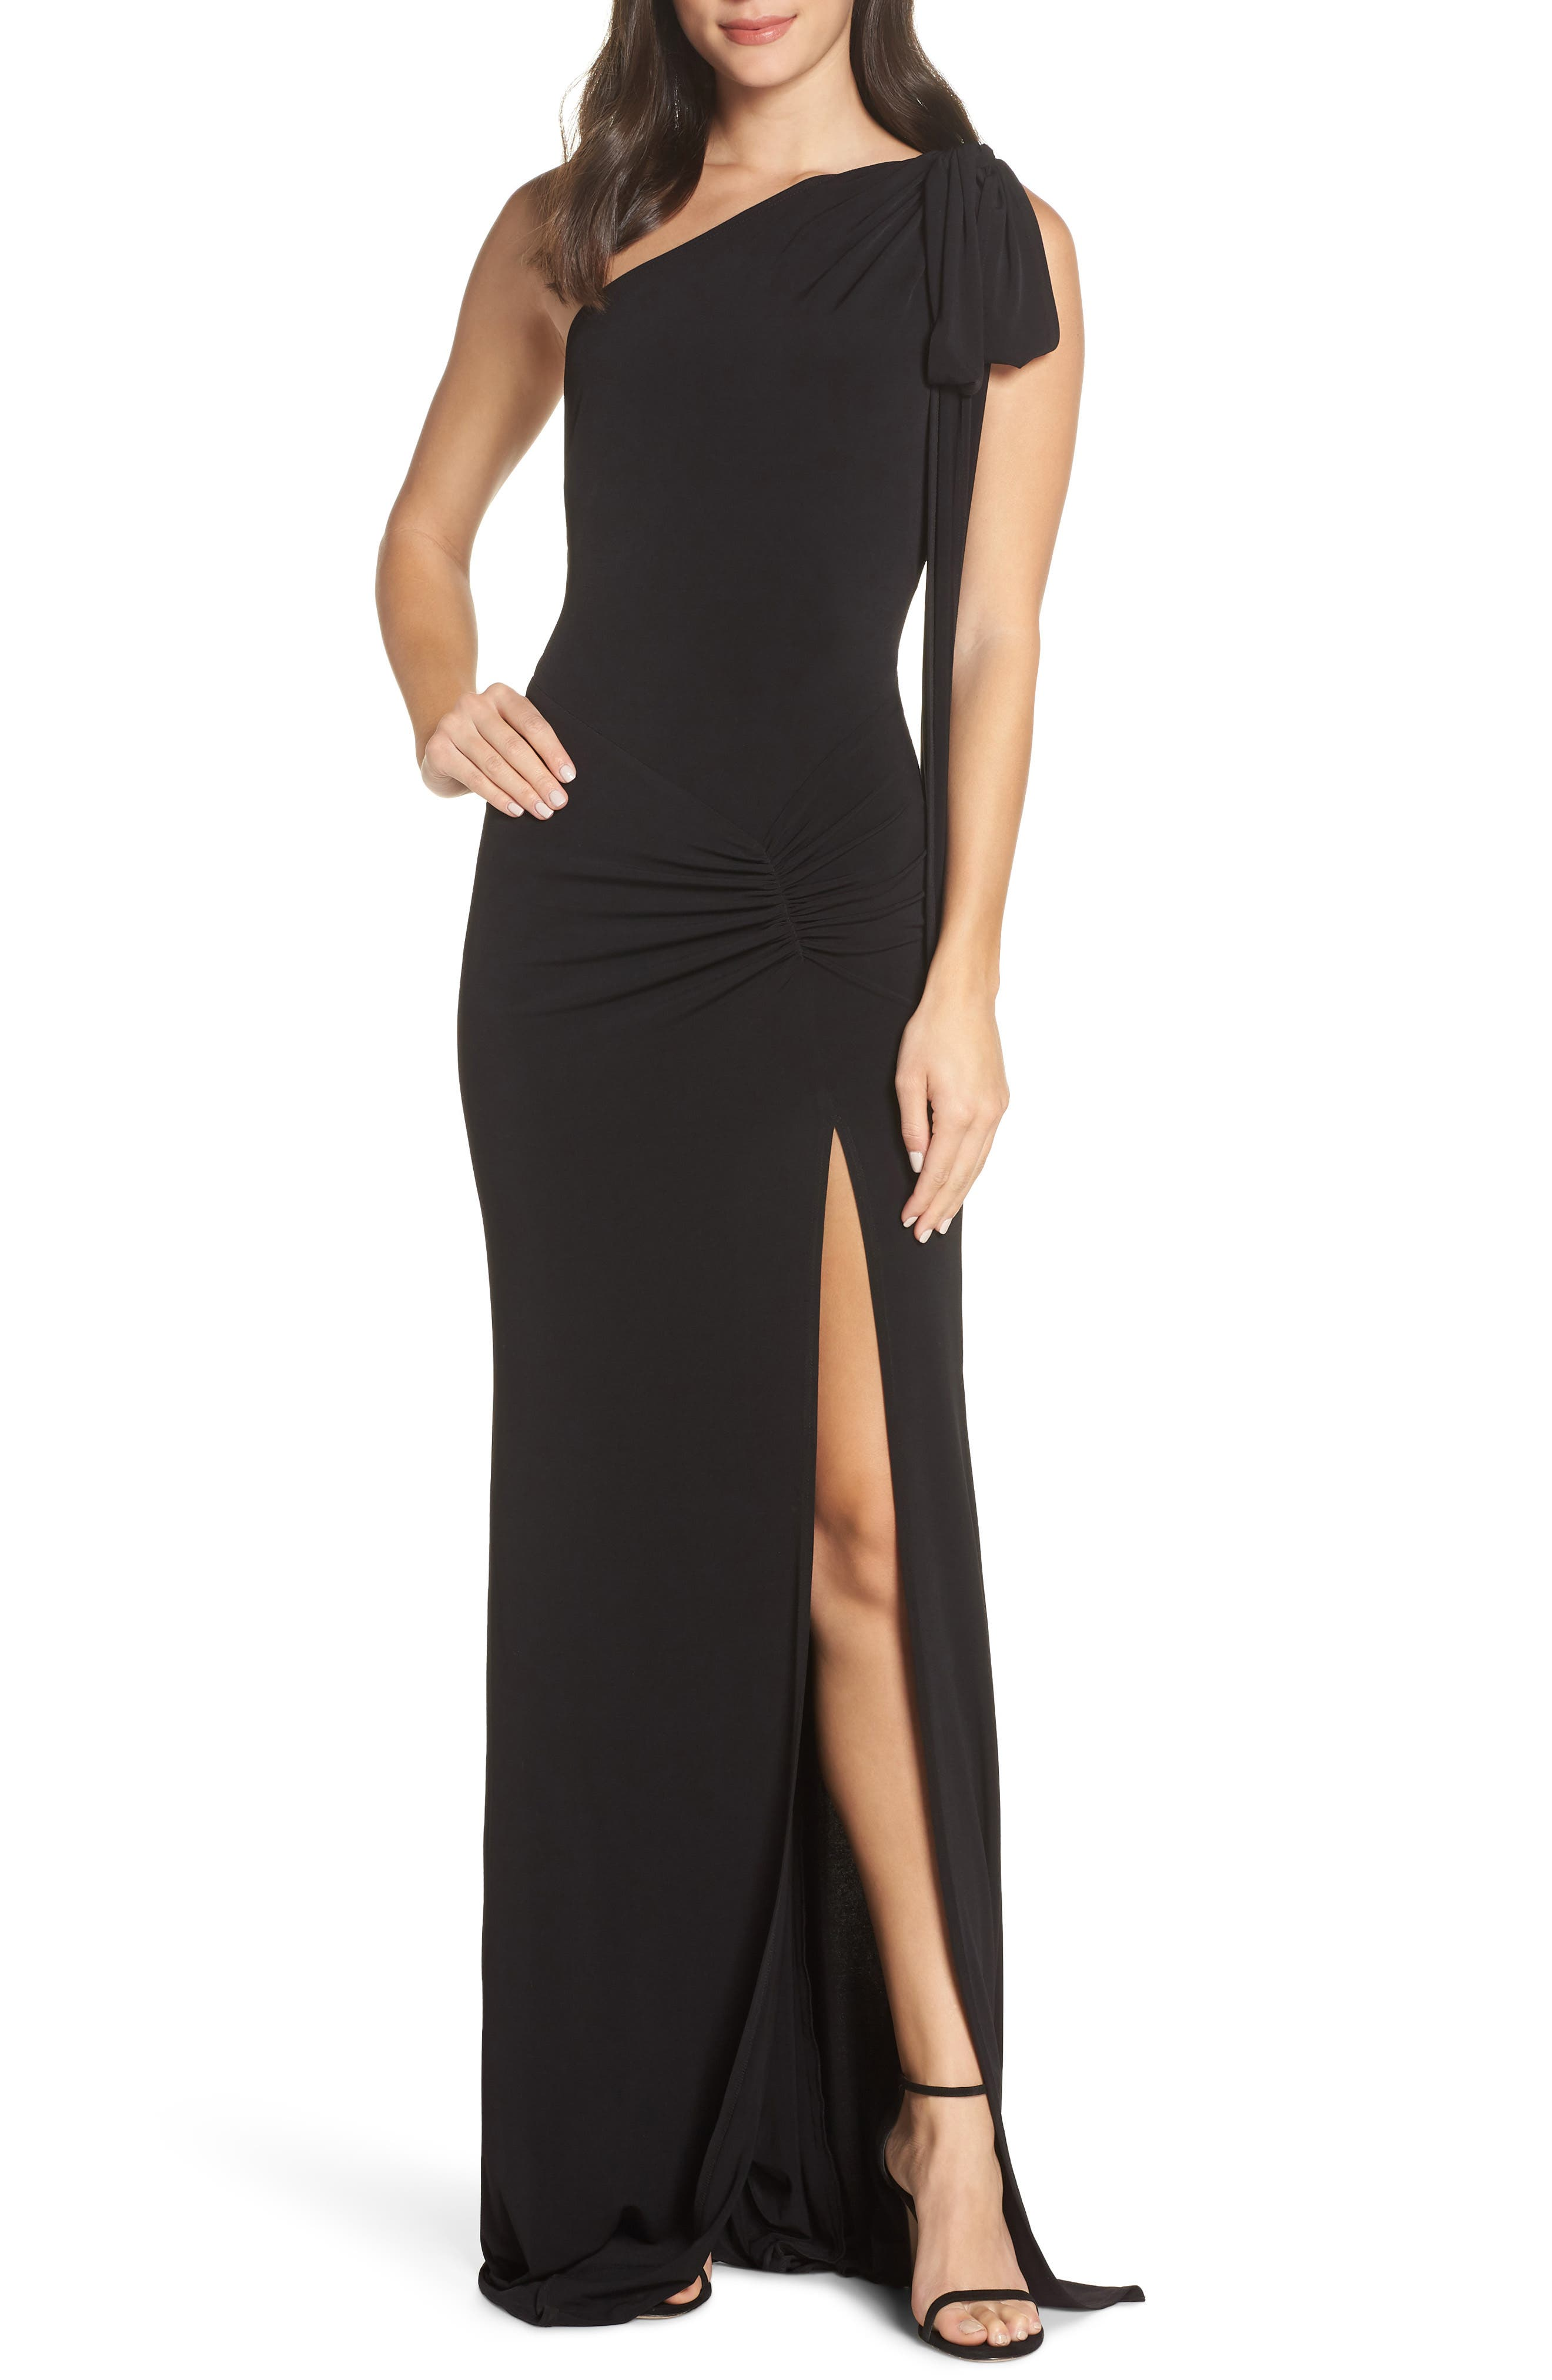 KATIE MAY One-Shoulder Gown, Main, color, BLACK